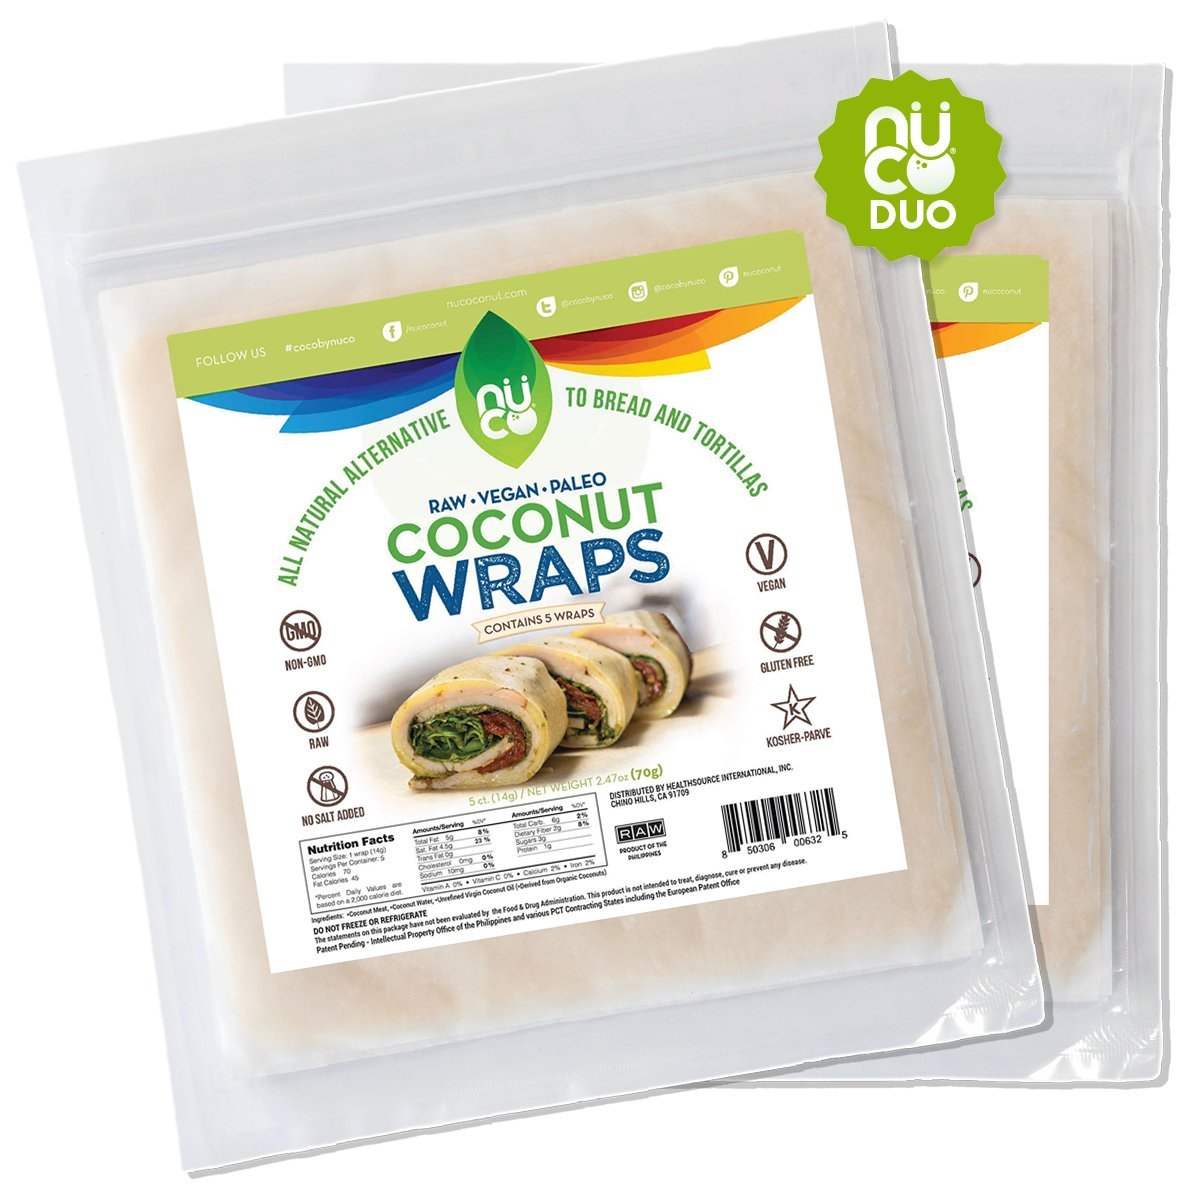 NUCO All-Natural Paleo Gluten-Free Vegan Coconut Wraps (Non-Gmo), 10 Count (Two Packs of Five Wraps Each)